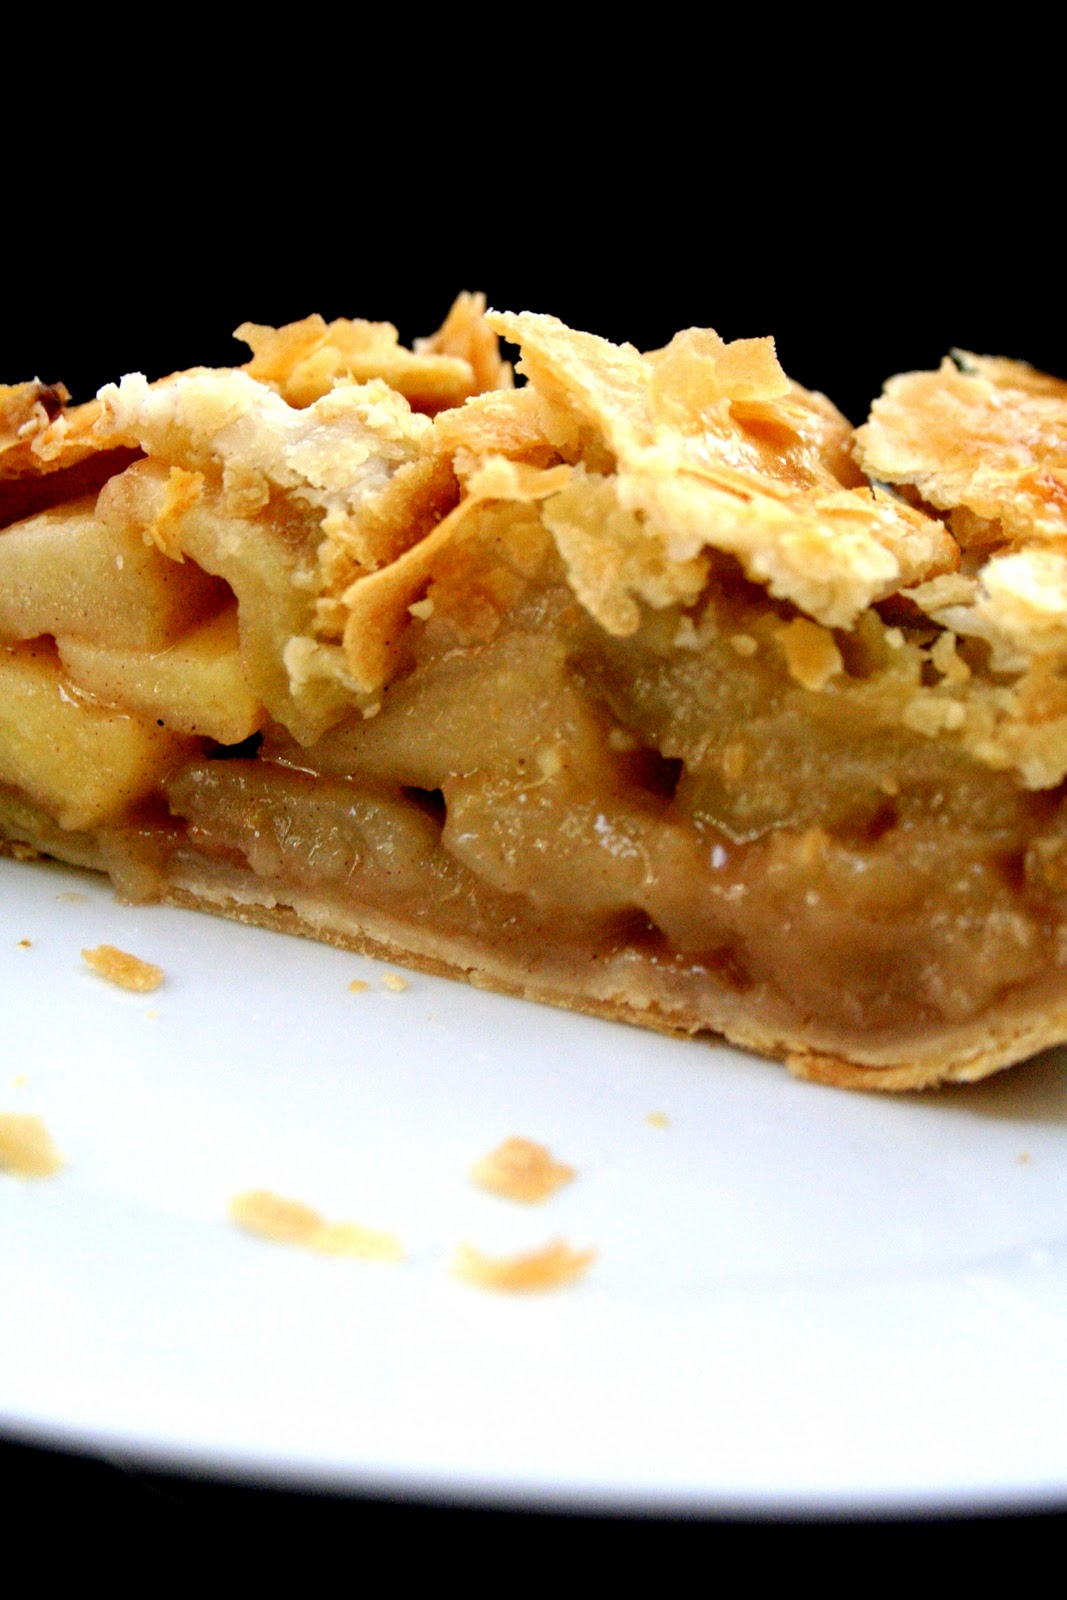 Scrumptious apple pie - Broma Bakery